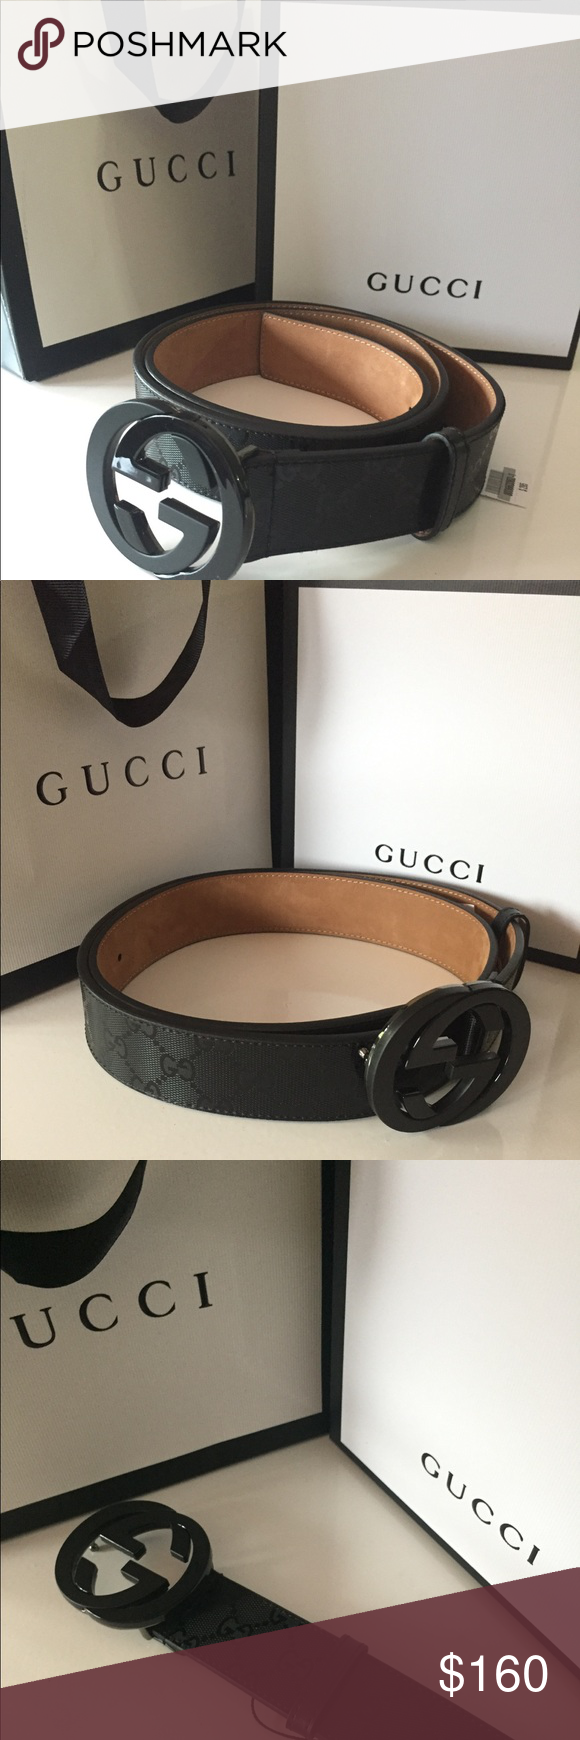 42916c710 Gucci Black Imprime Belt Authentic Gucci Belt- Black Imprime Shiny Print  with Black interlocking GG Buckle. Comes with box and dust bag.